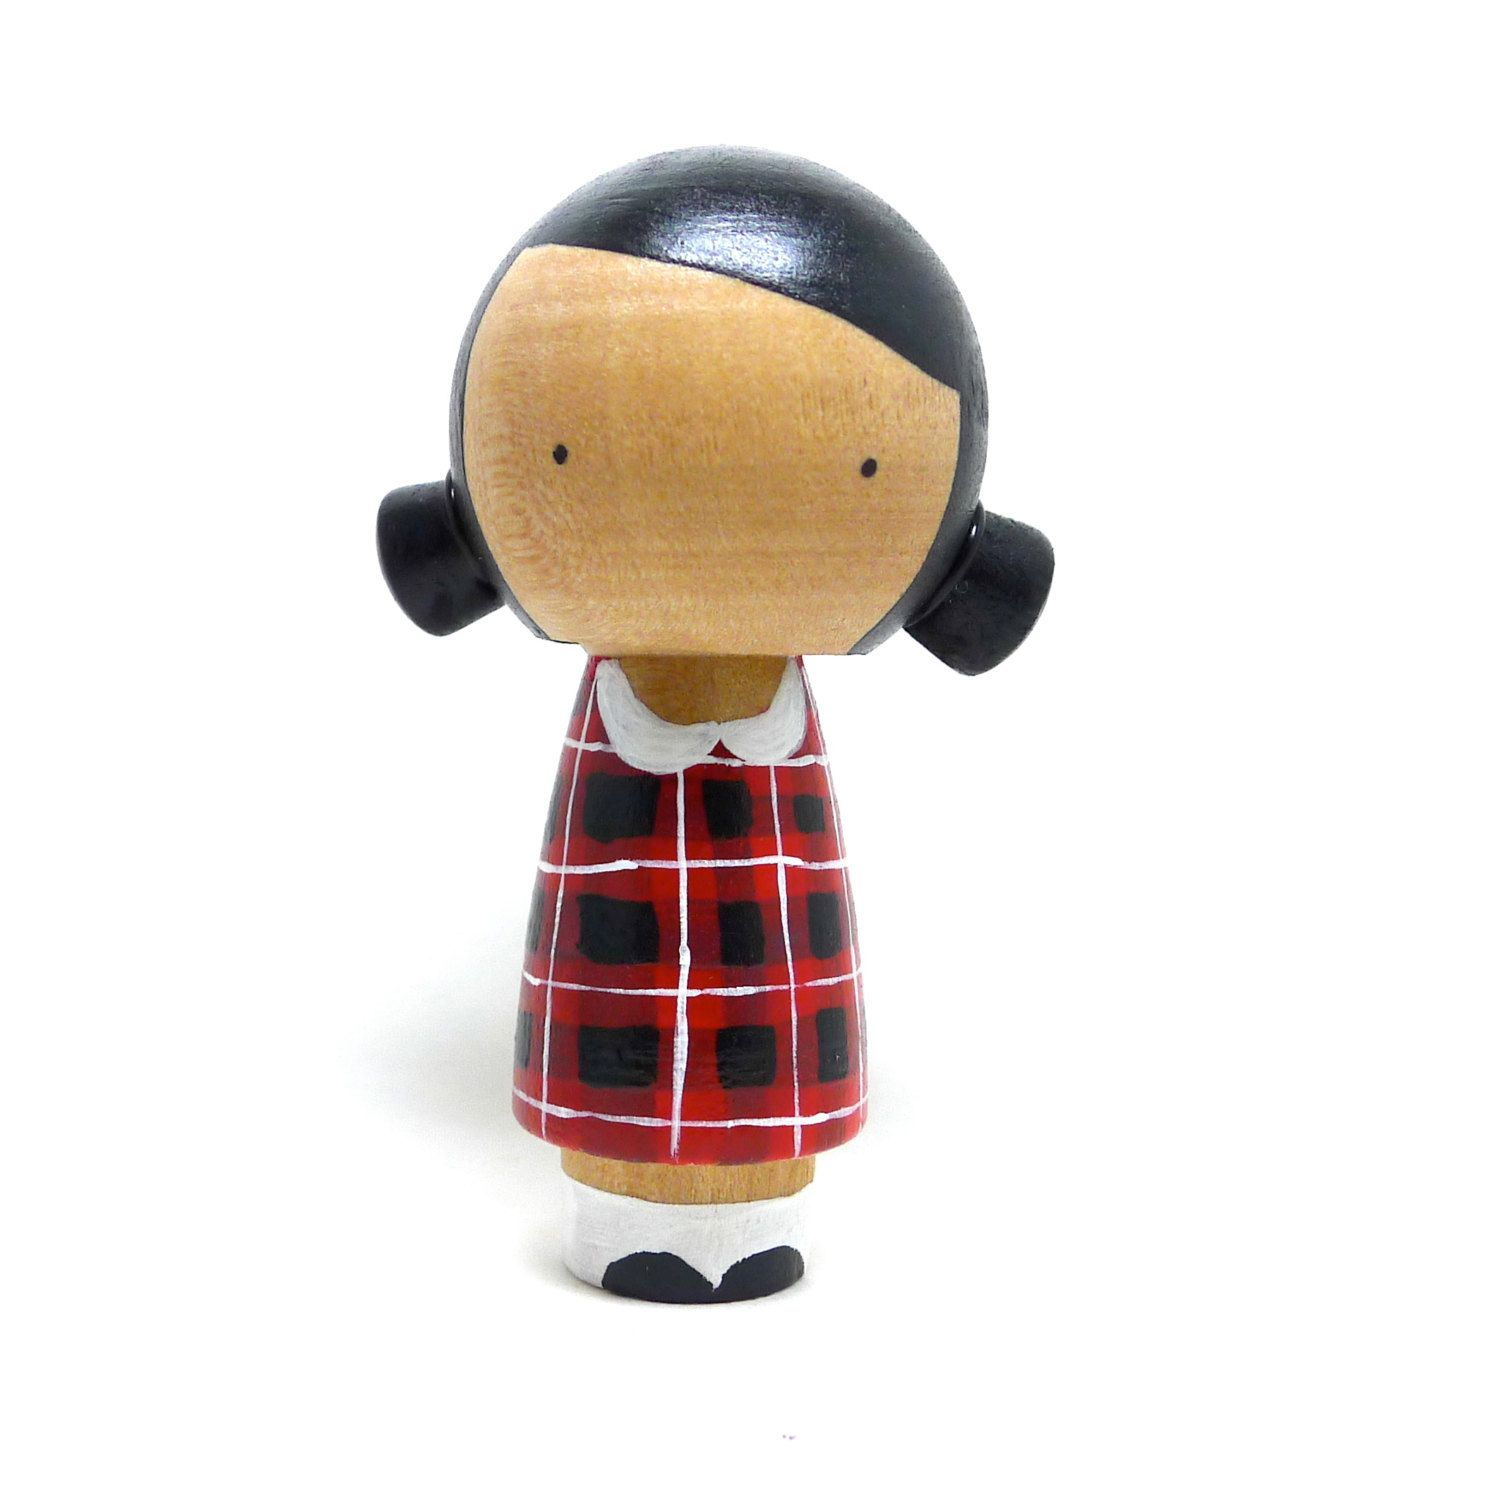 Wooden Peg Doll Kokeshi Girl with Plaid Dress